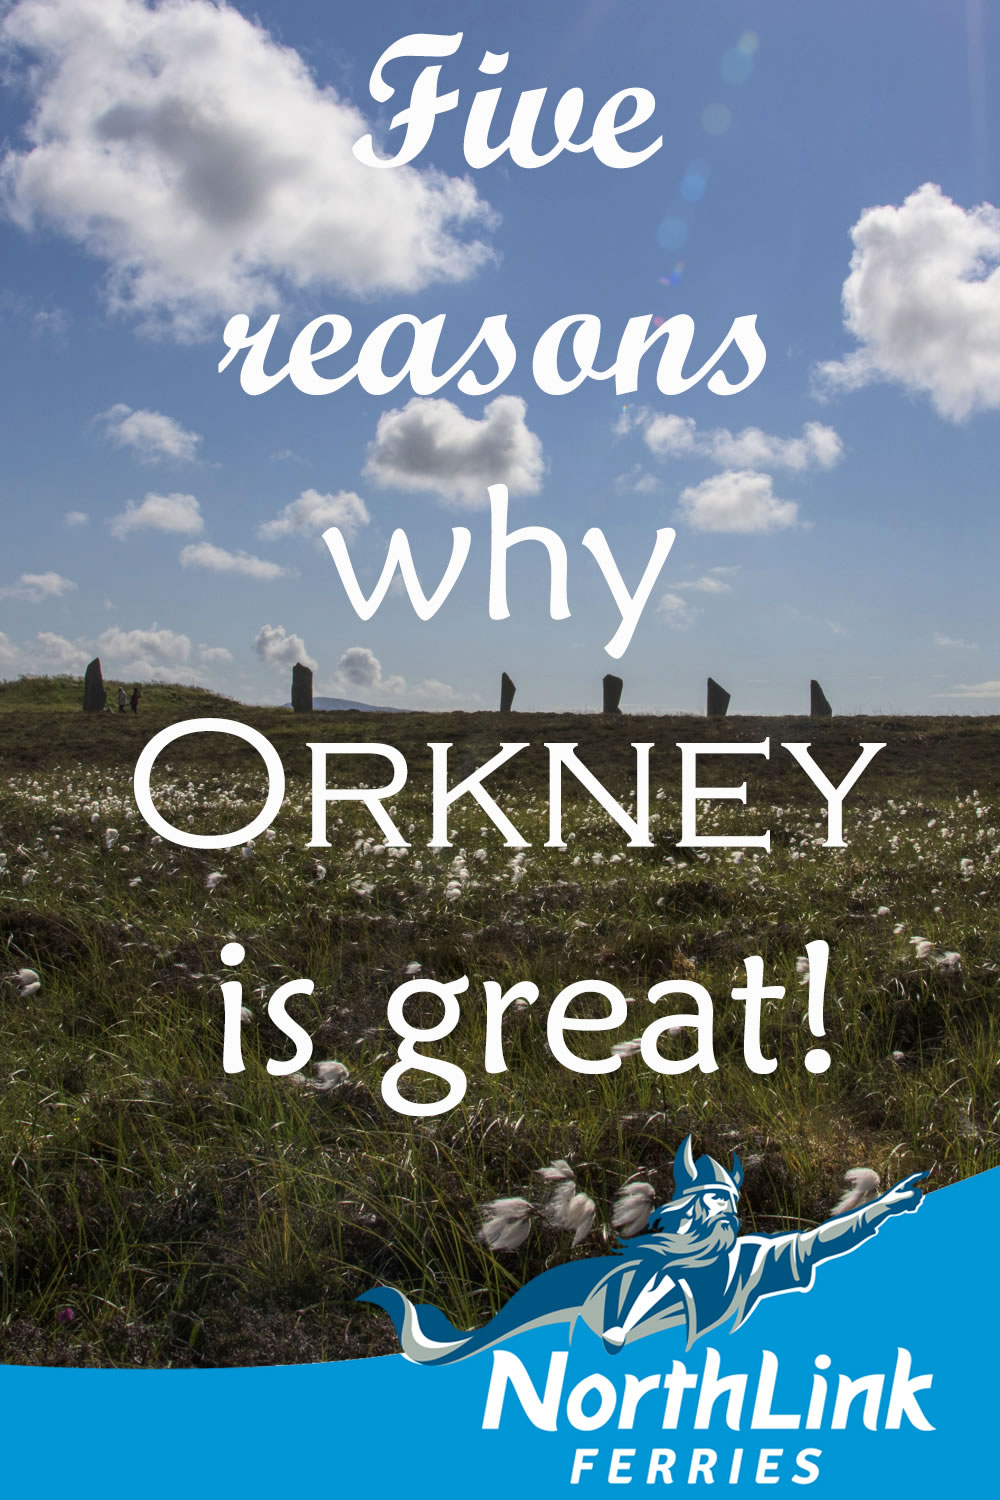 Five reasons why Orkney is great!